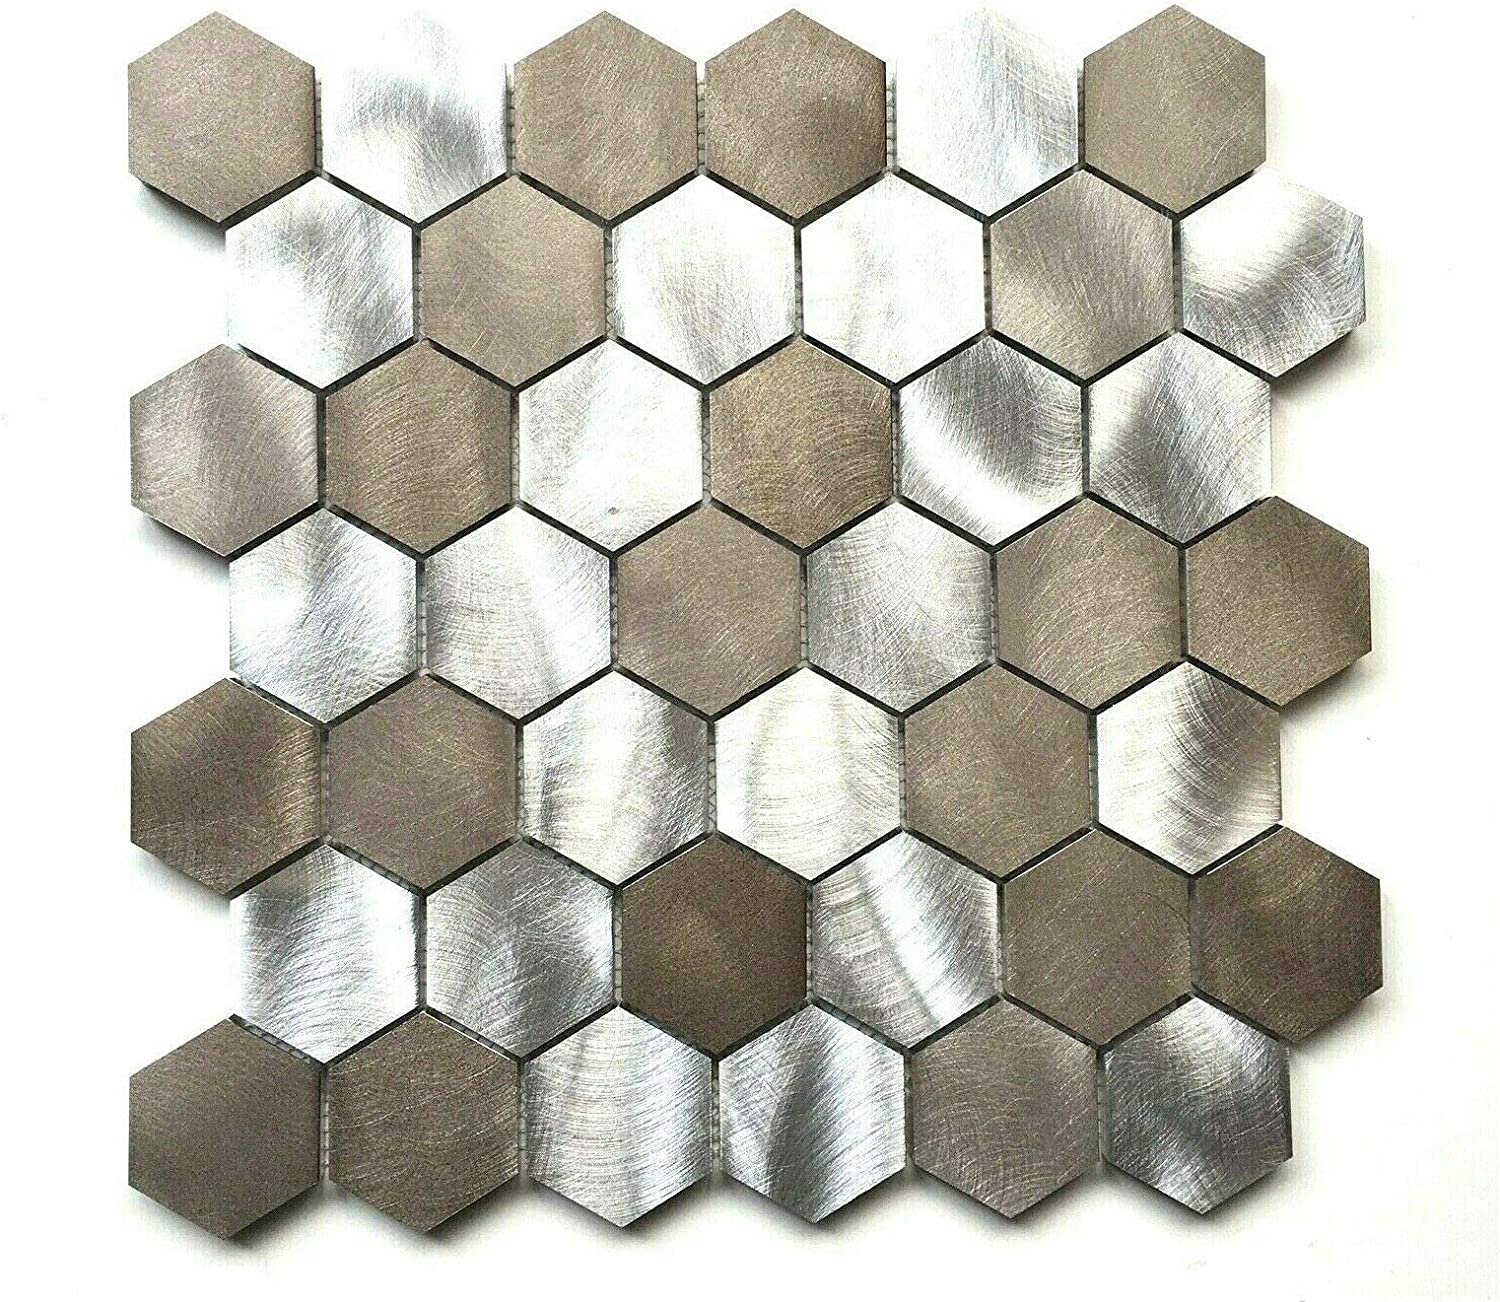 - Amazon.com: Squarefeet Depot Brushed Aluminum Multi-Color 2 Inch